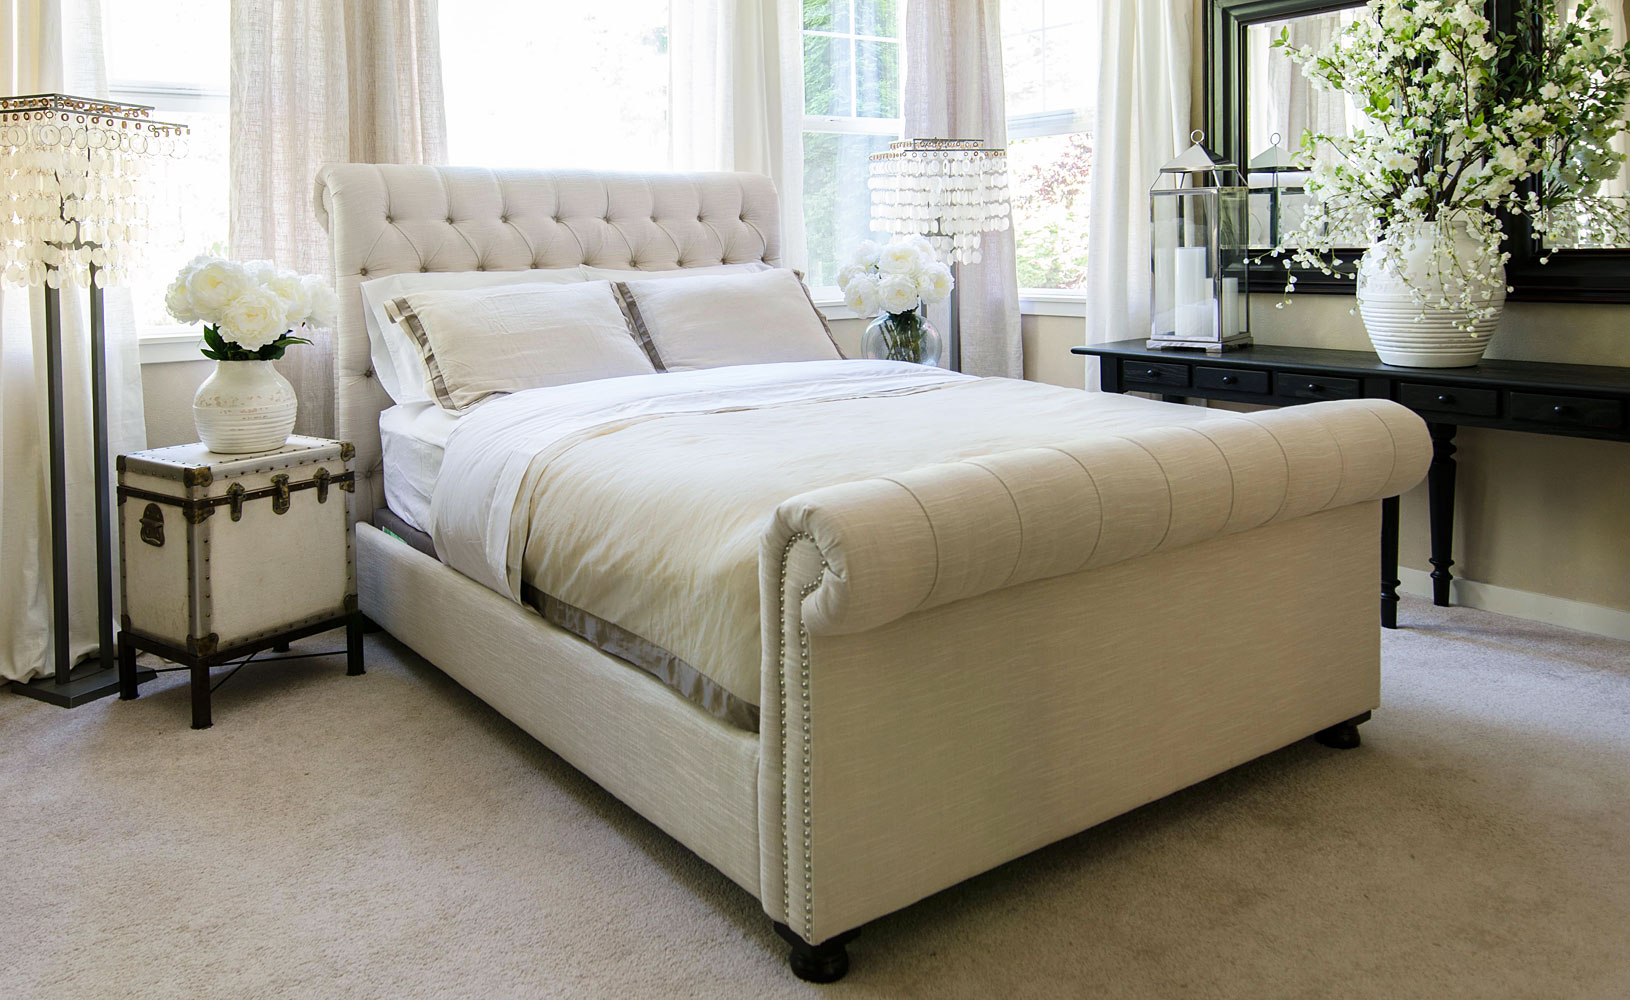 Chesterfield Style Fabric Tufted Bed Club Furniture: bedroom furniture chesterfield